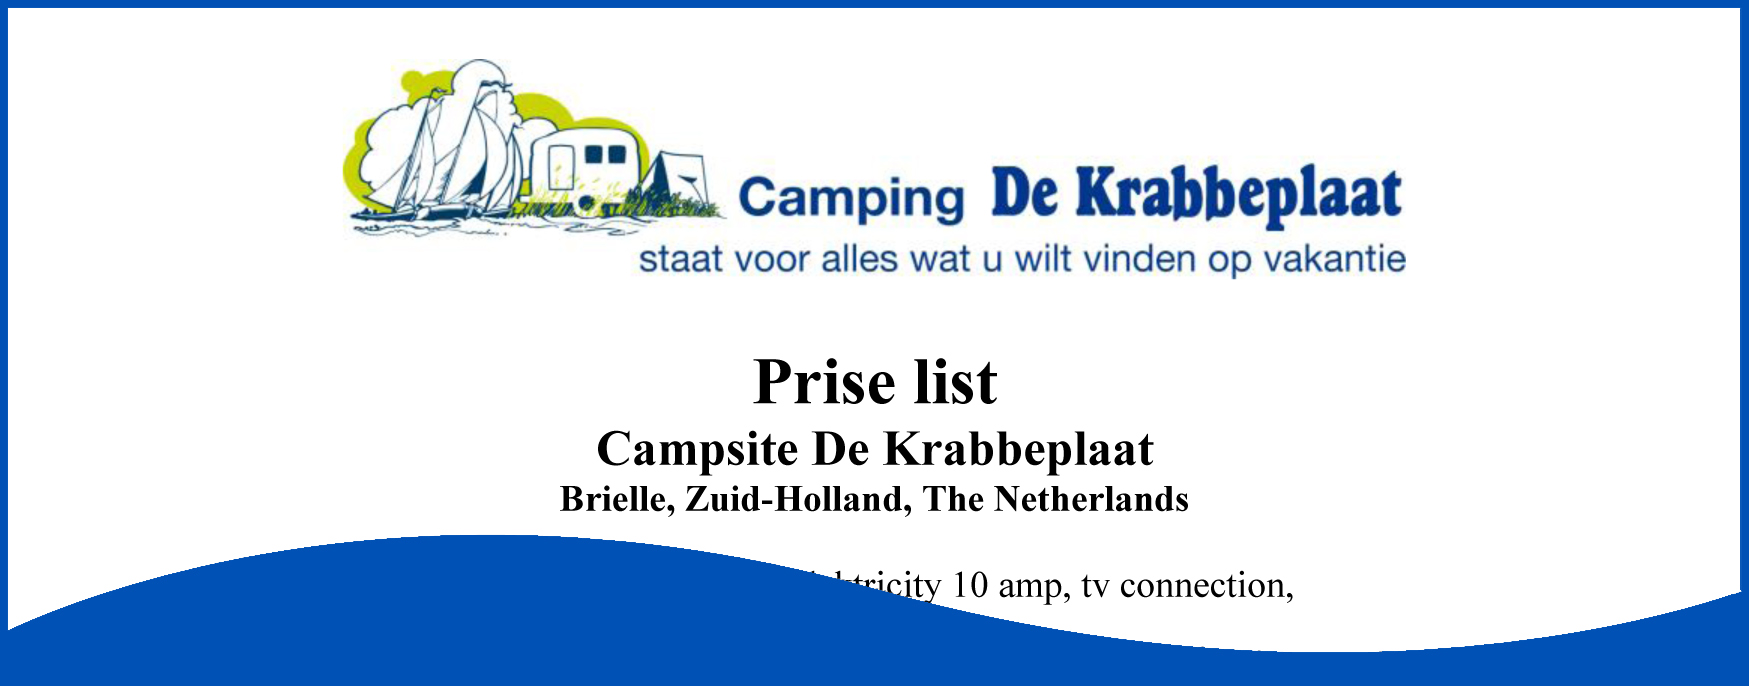 Price List Camping De Krabbeplaat